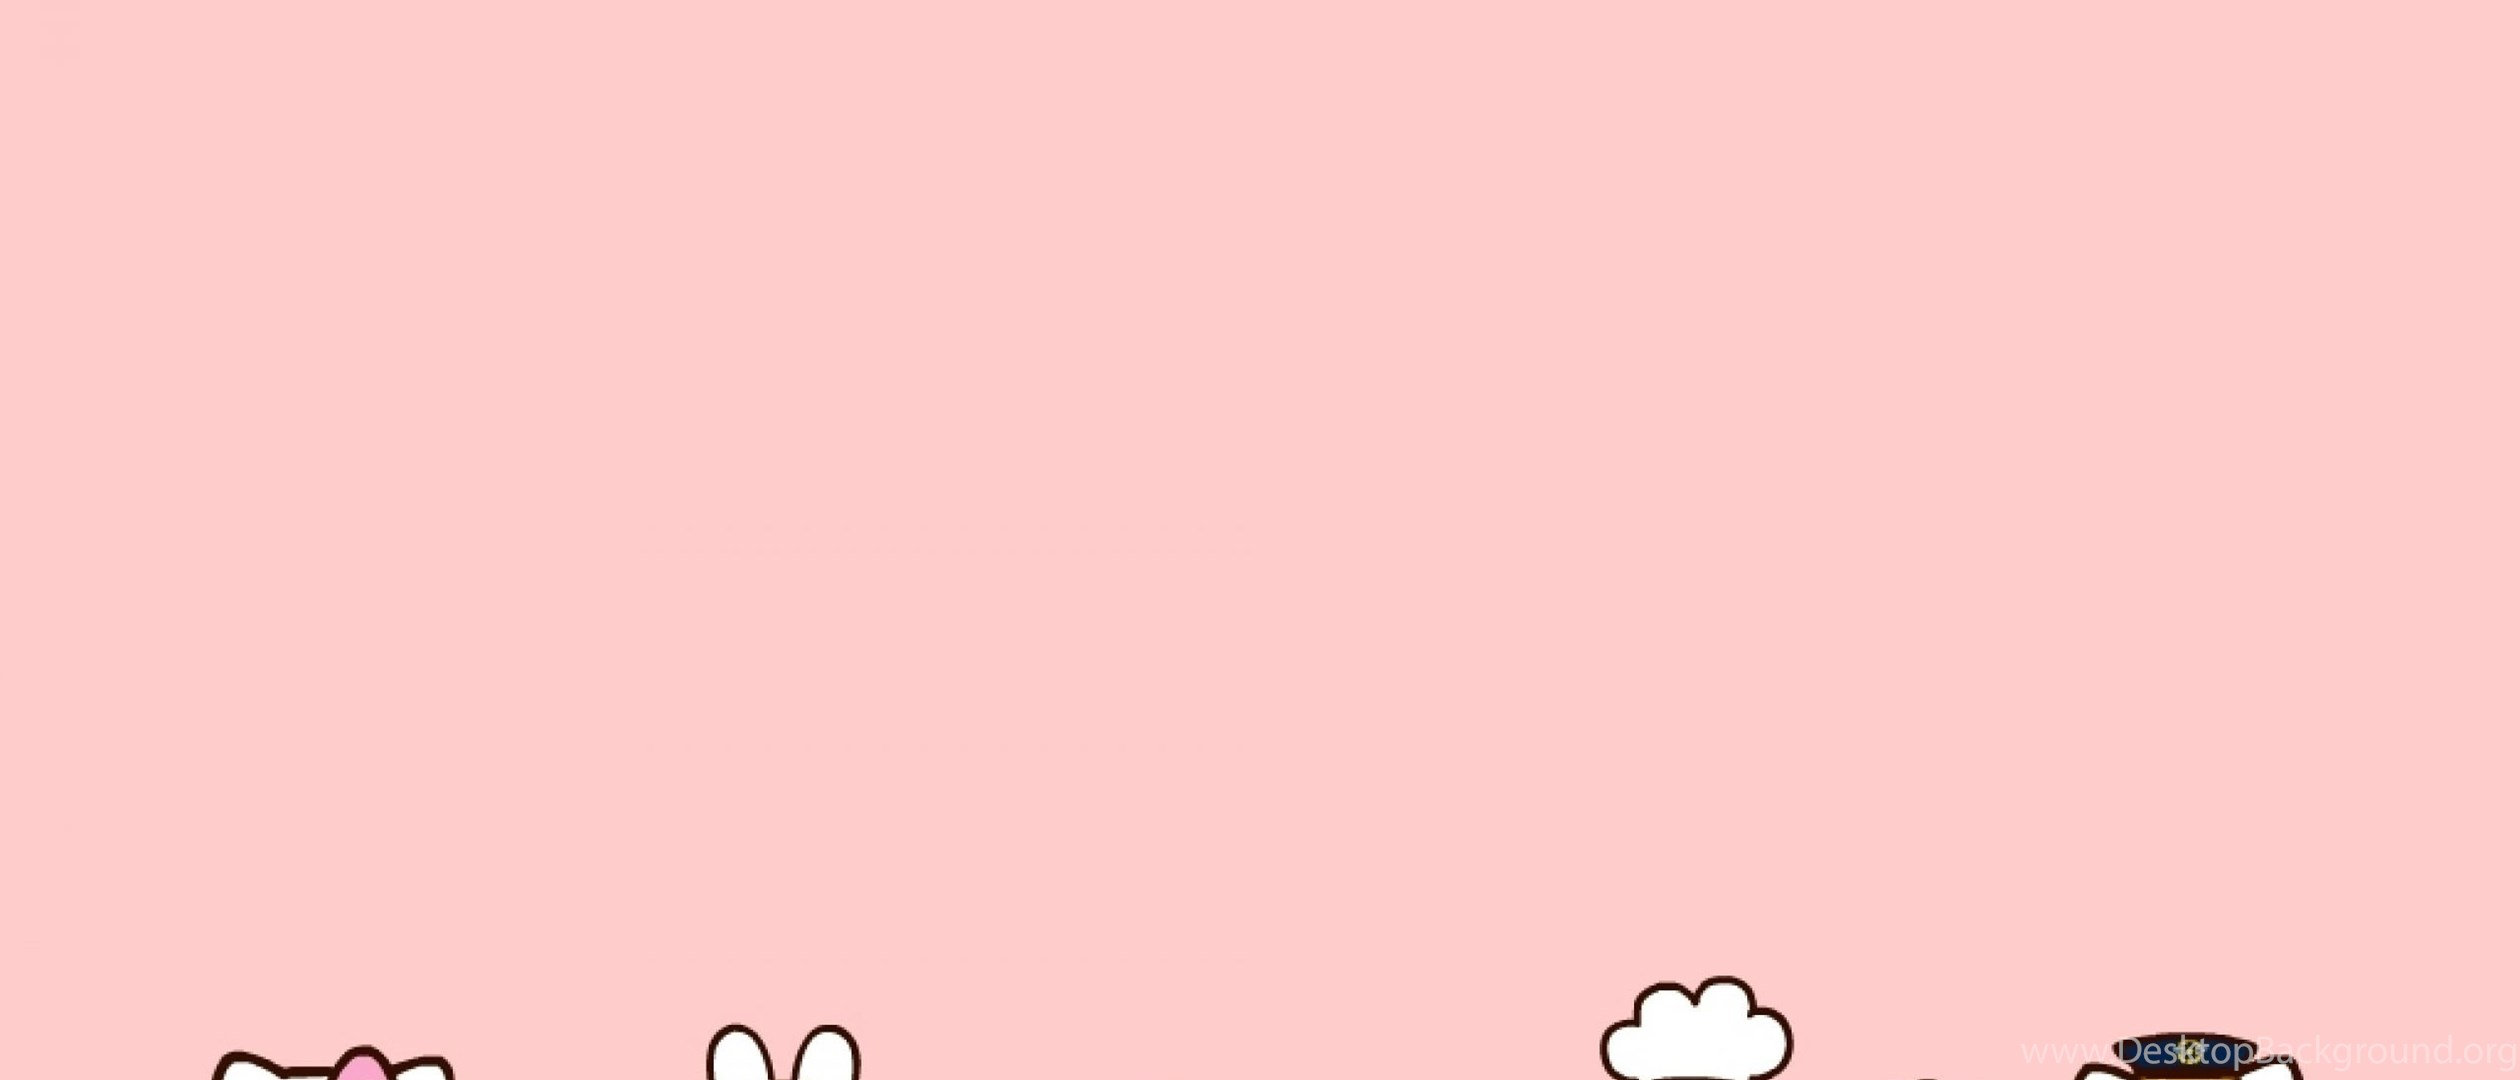 Great Wallpaper Hello Kitty Peach - 473529_picture-of-hello-kitty-wallpapers-original-picture-and-name-for_2560x1600_h  Best Photo Reference_913081.jpg